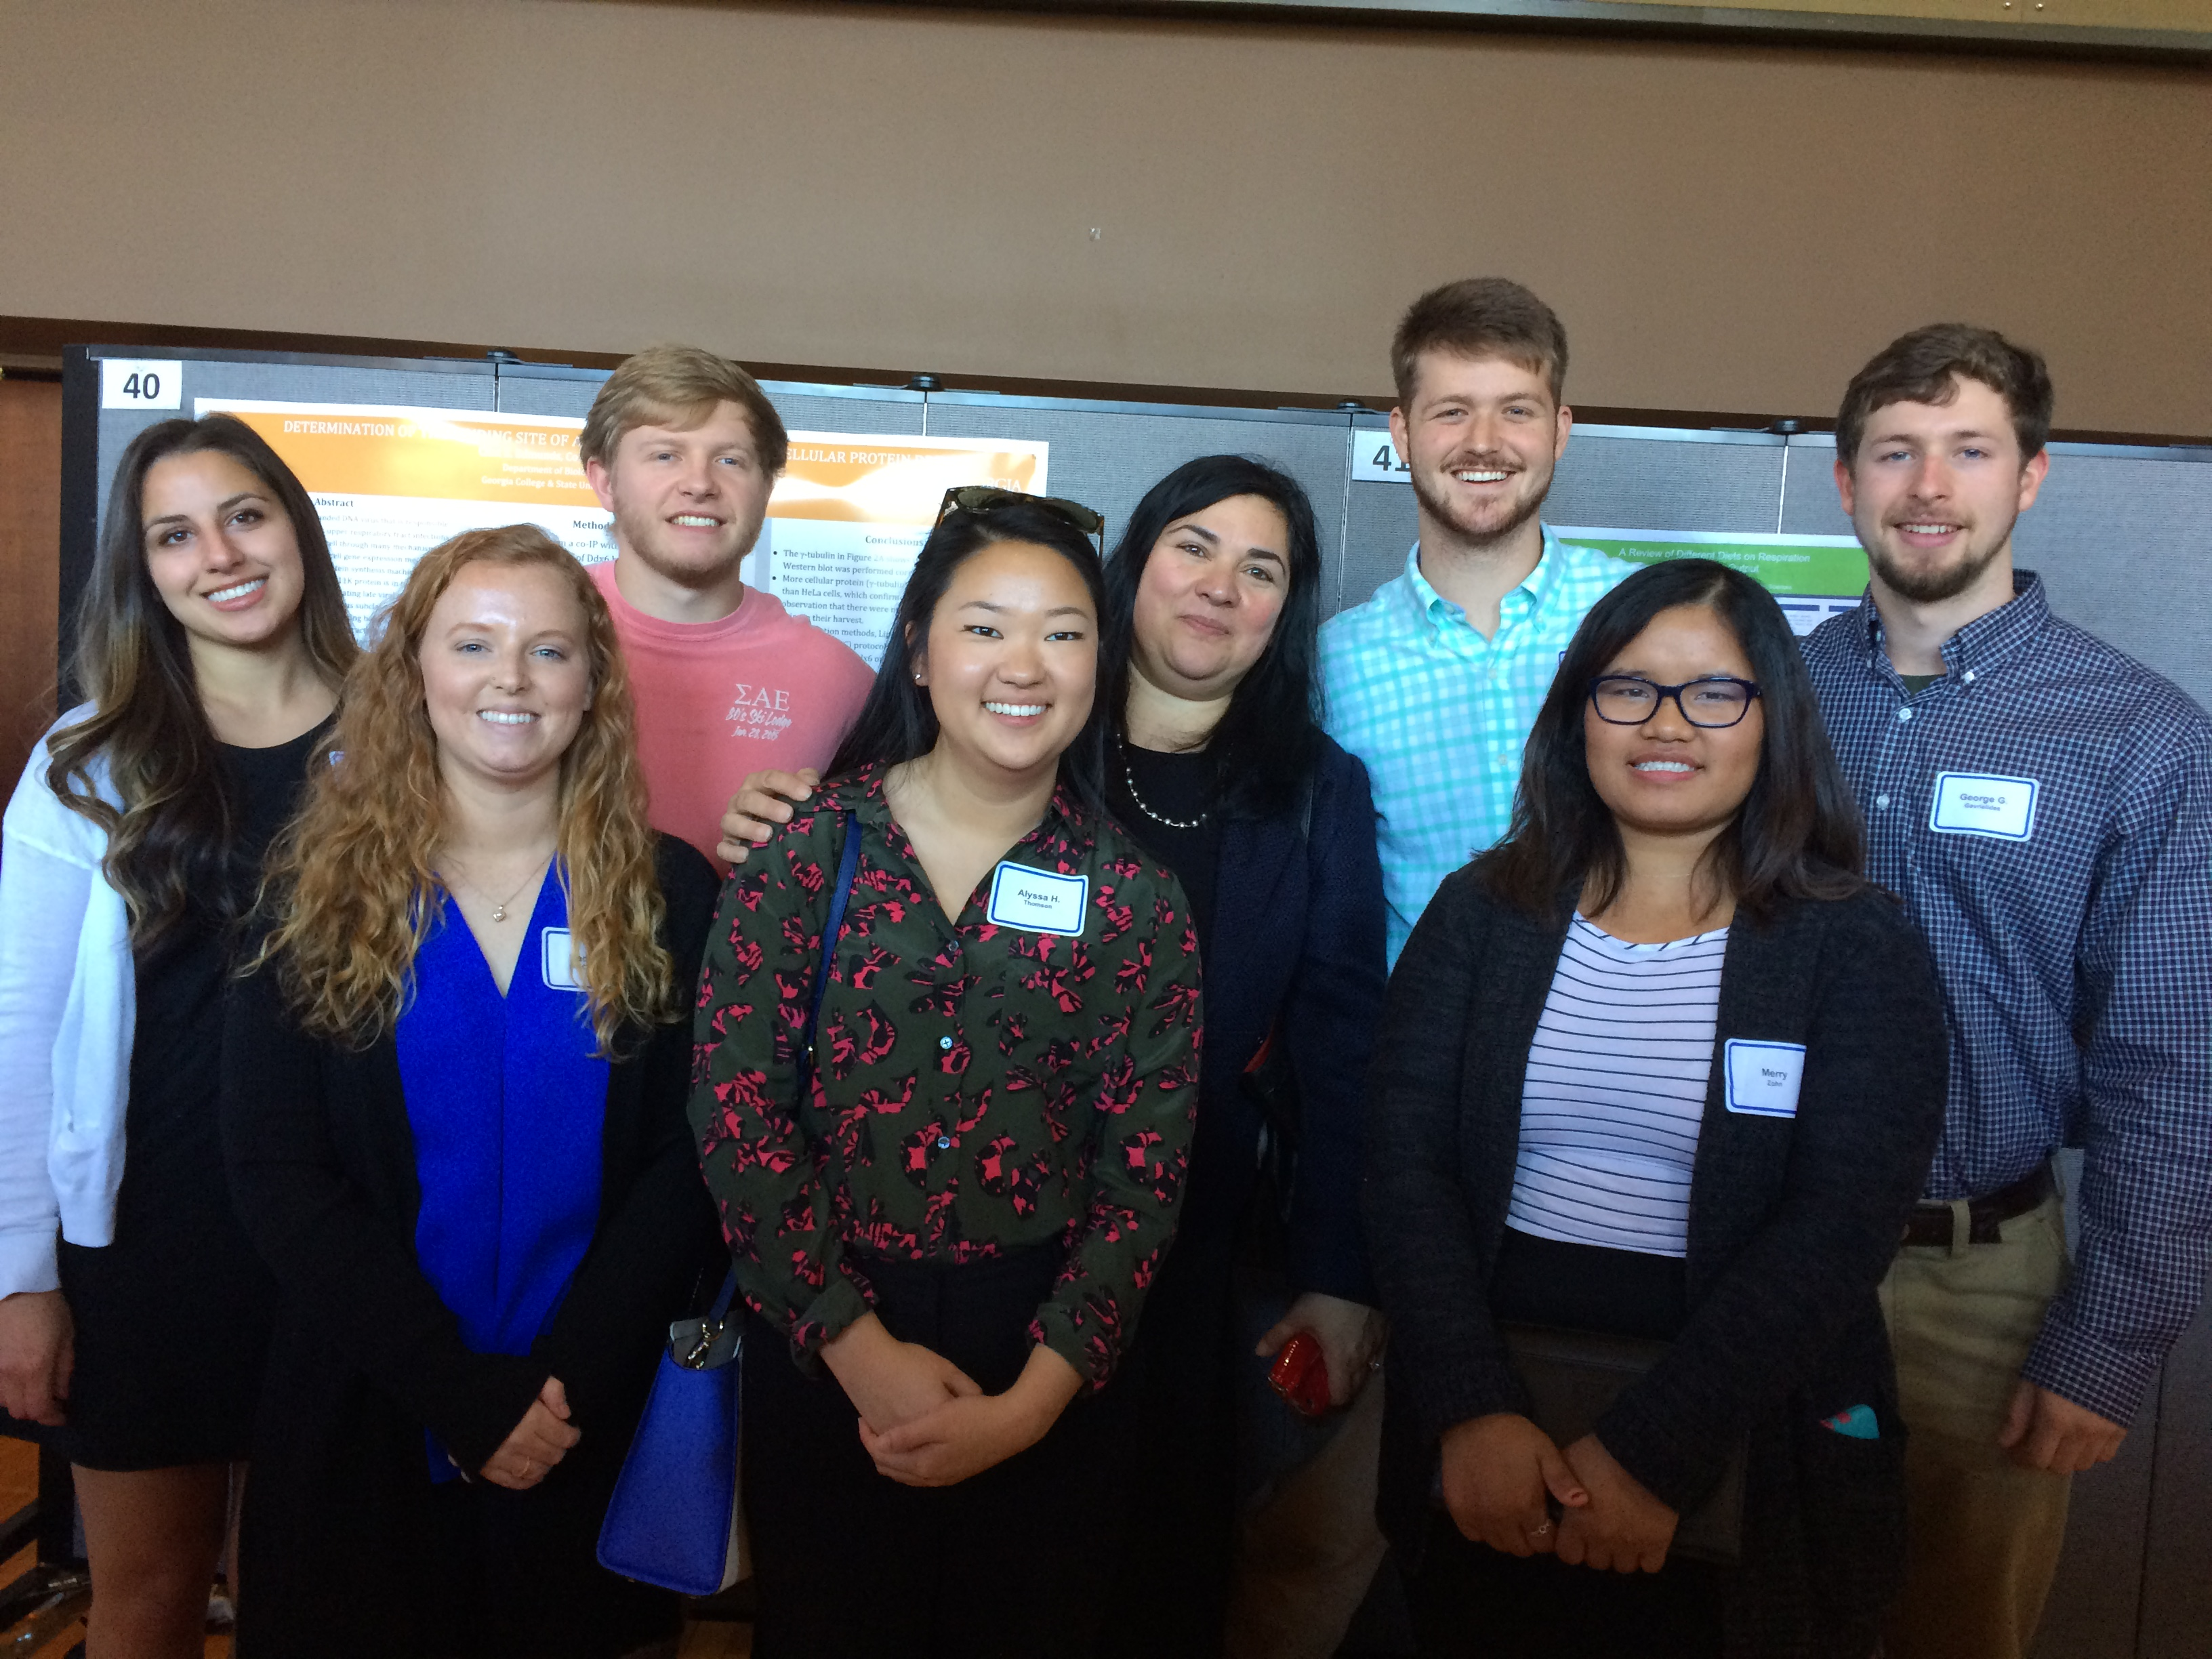 Student presenters at conference